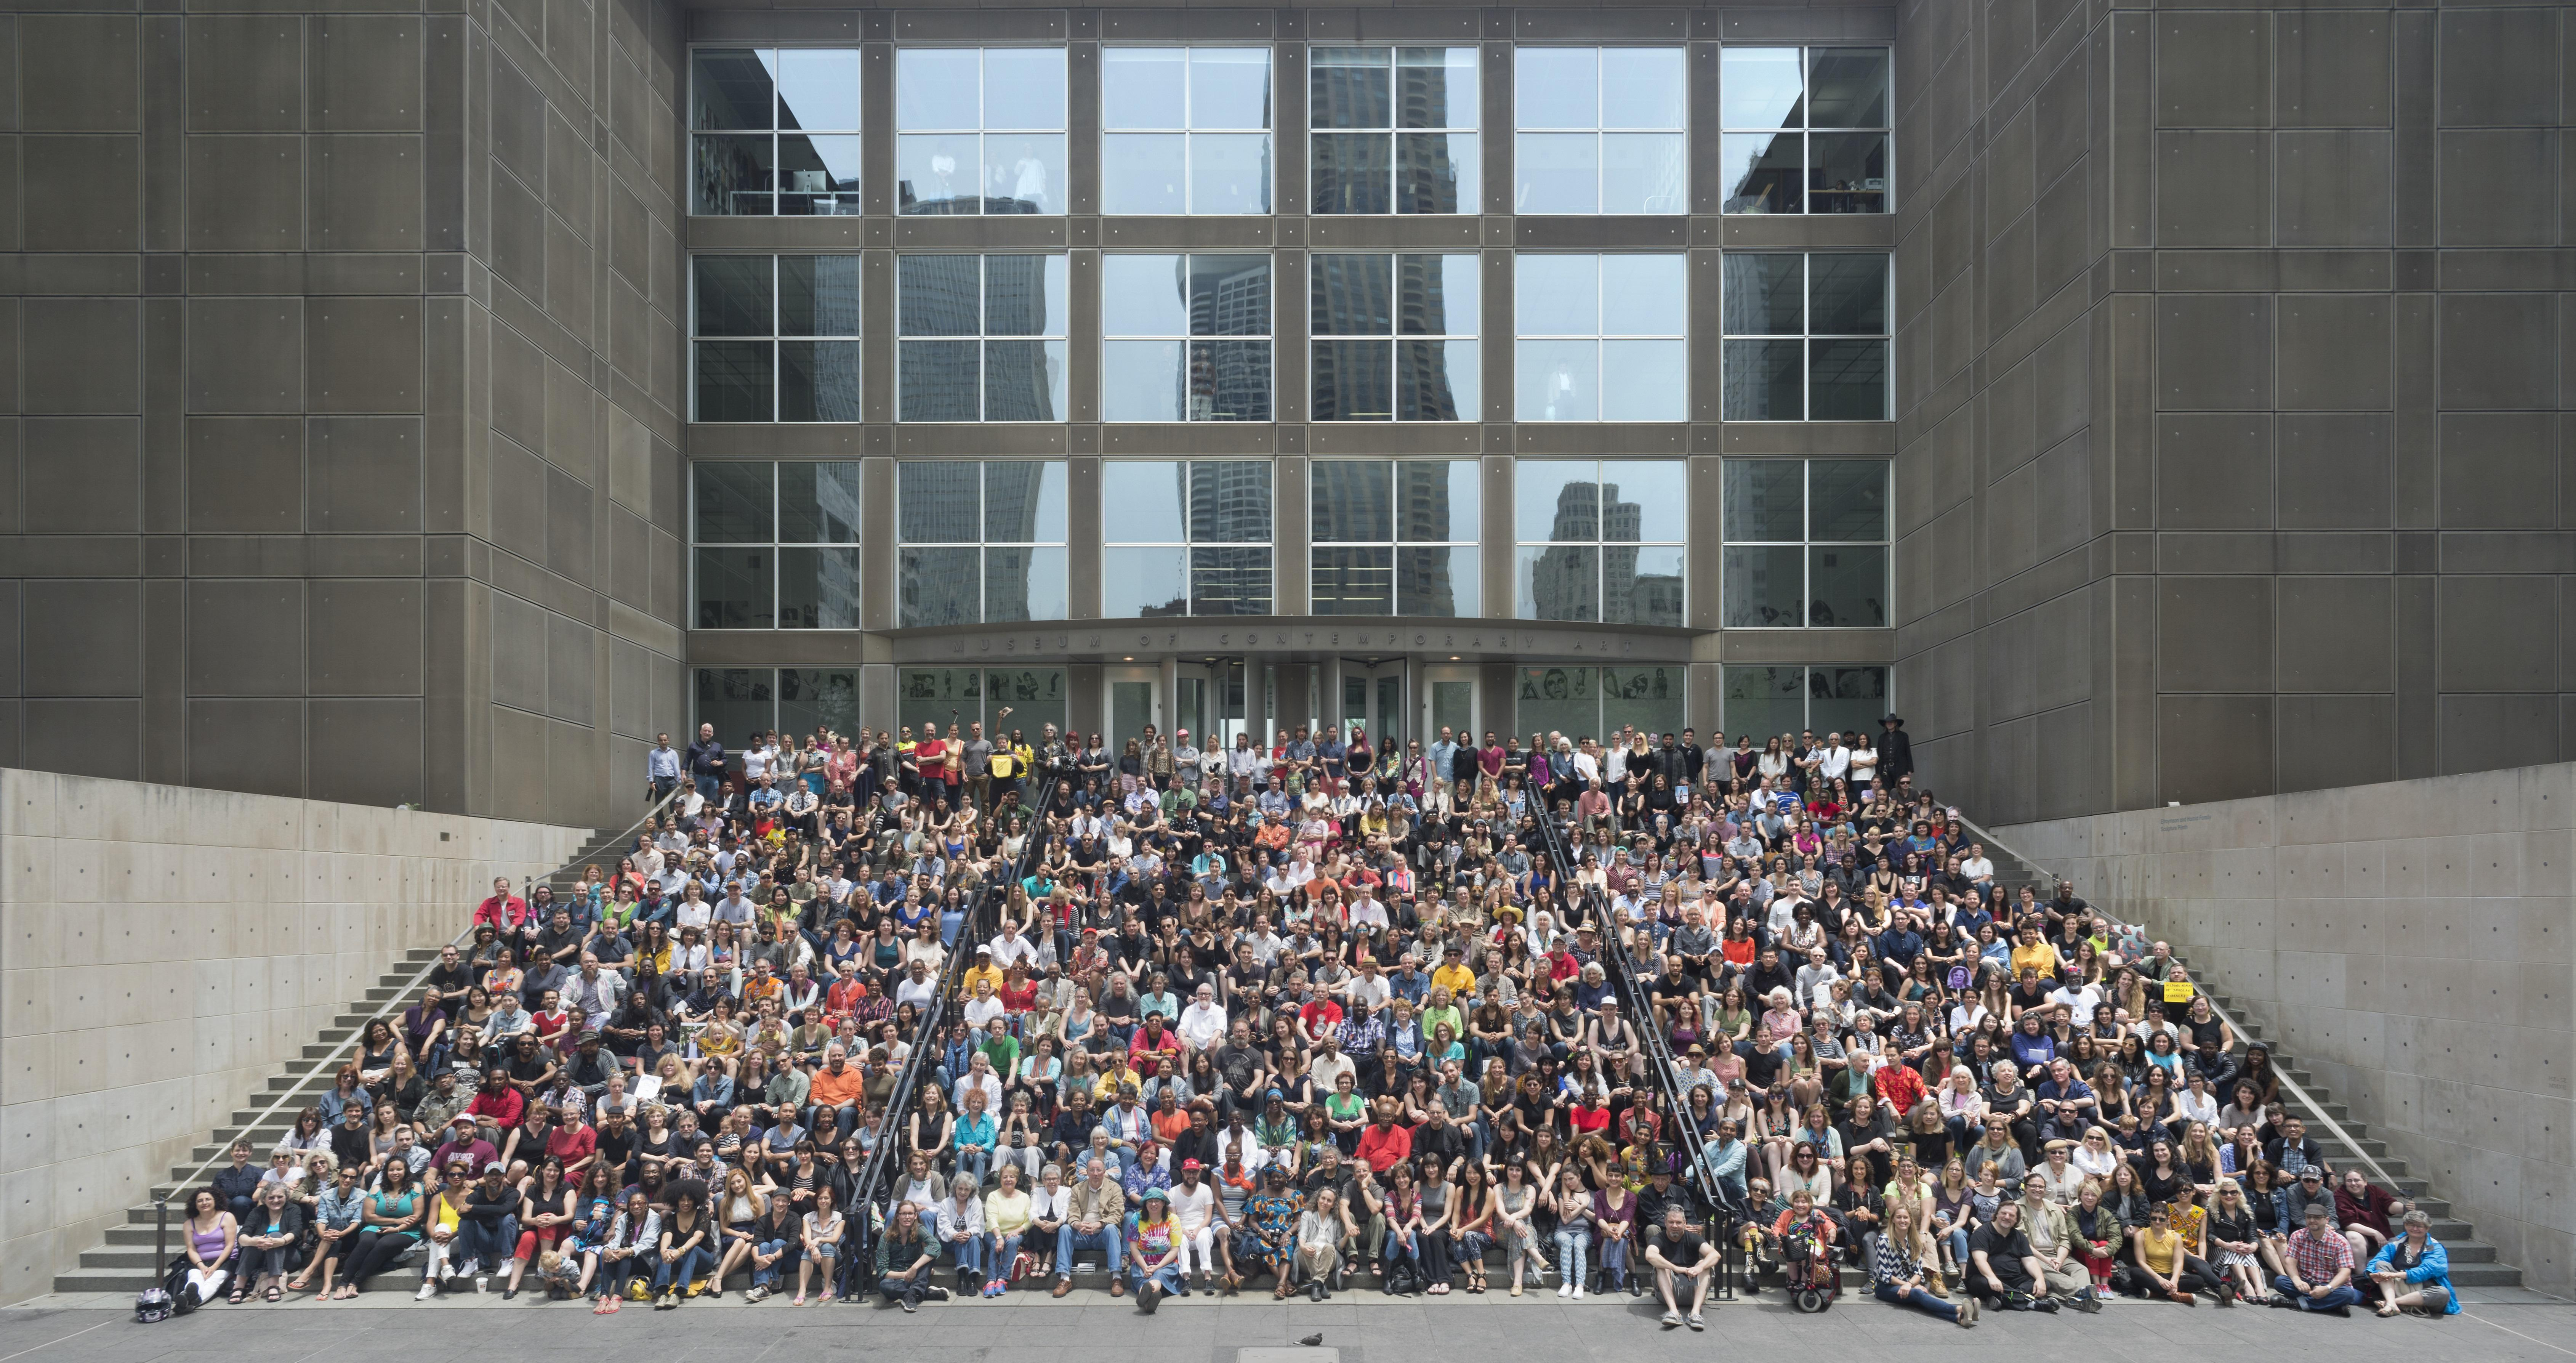 A large group of people sit on the steps of the MCA's plaza.